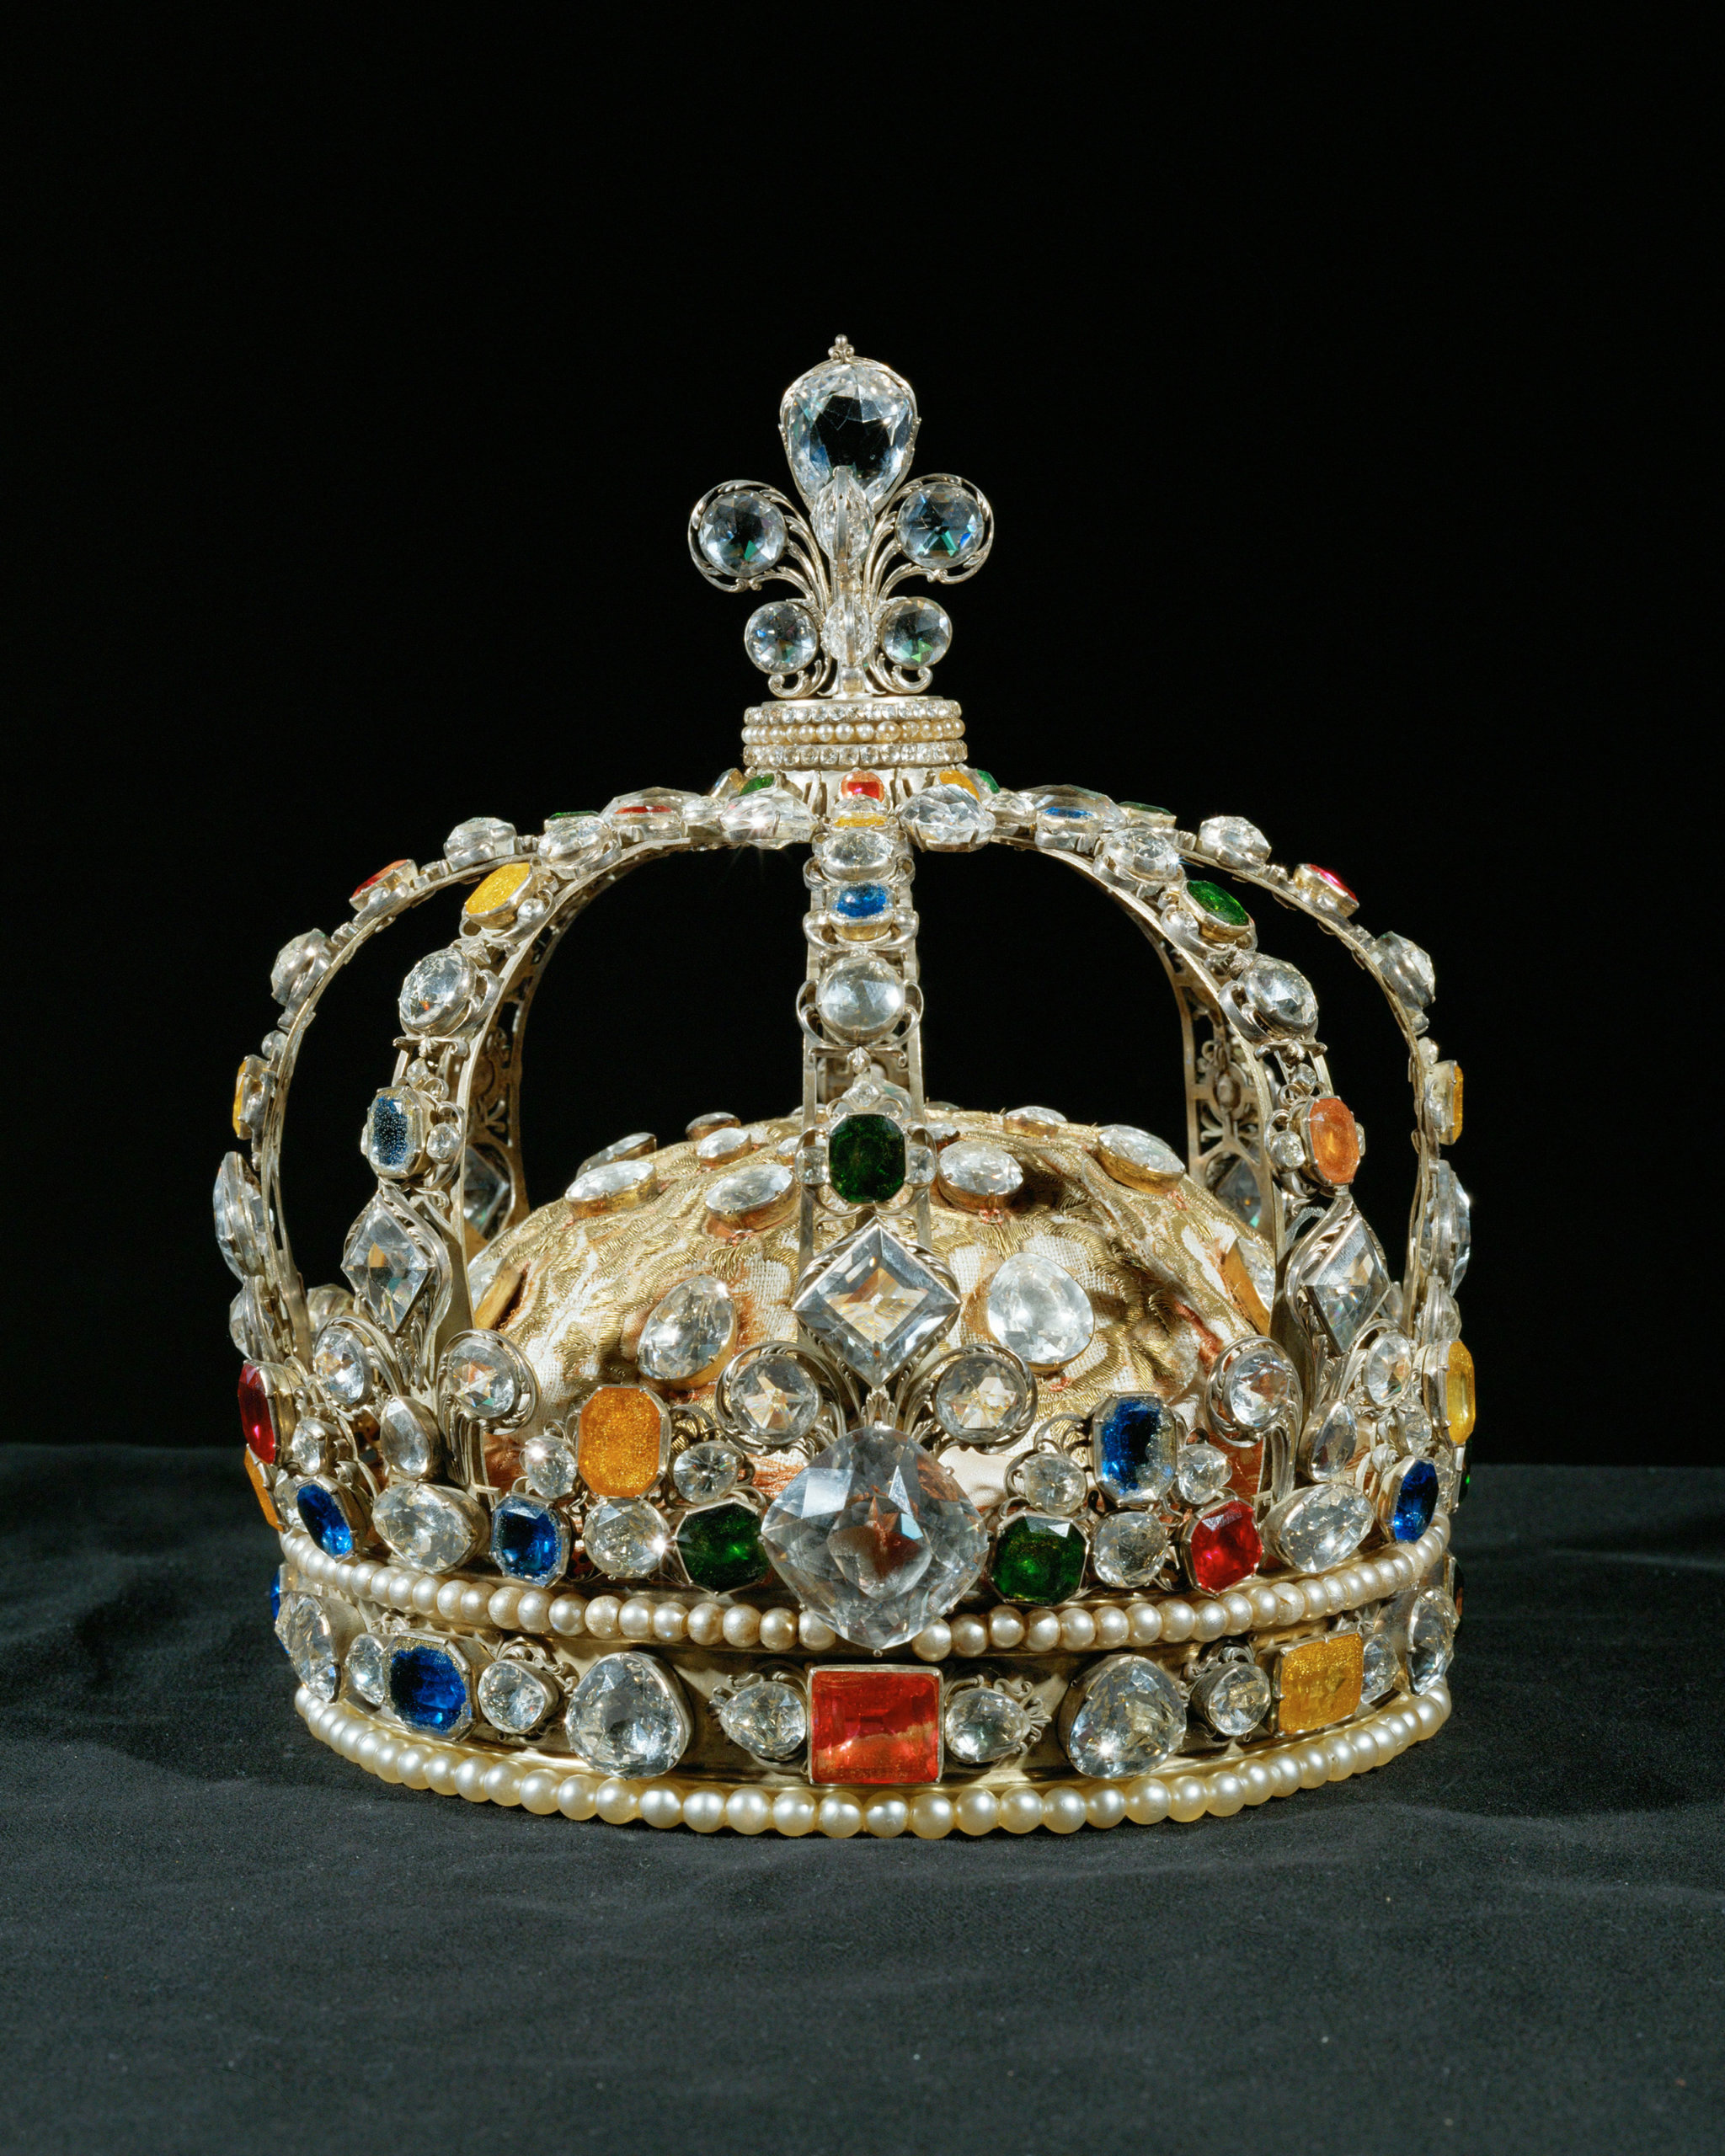 The Crown of Louis XV, embellished with Le Grand Mazarin diamond, sapphires, topazes, emeralds, rubies, and 2 rows of pearls